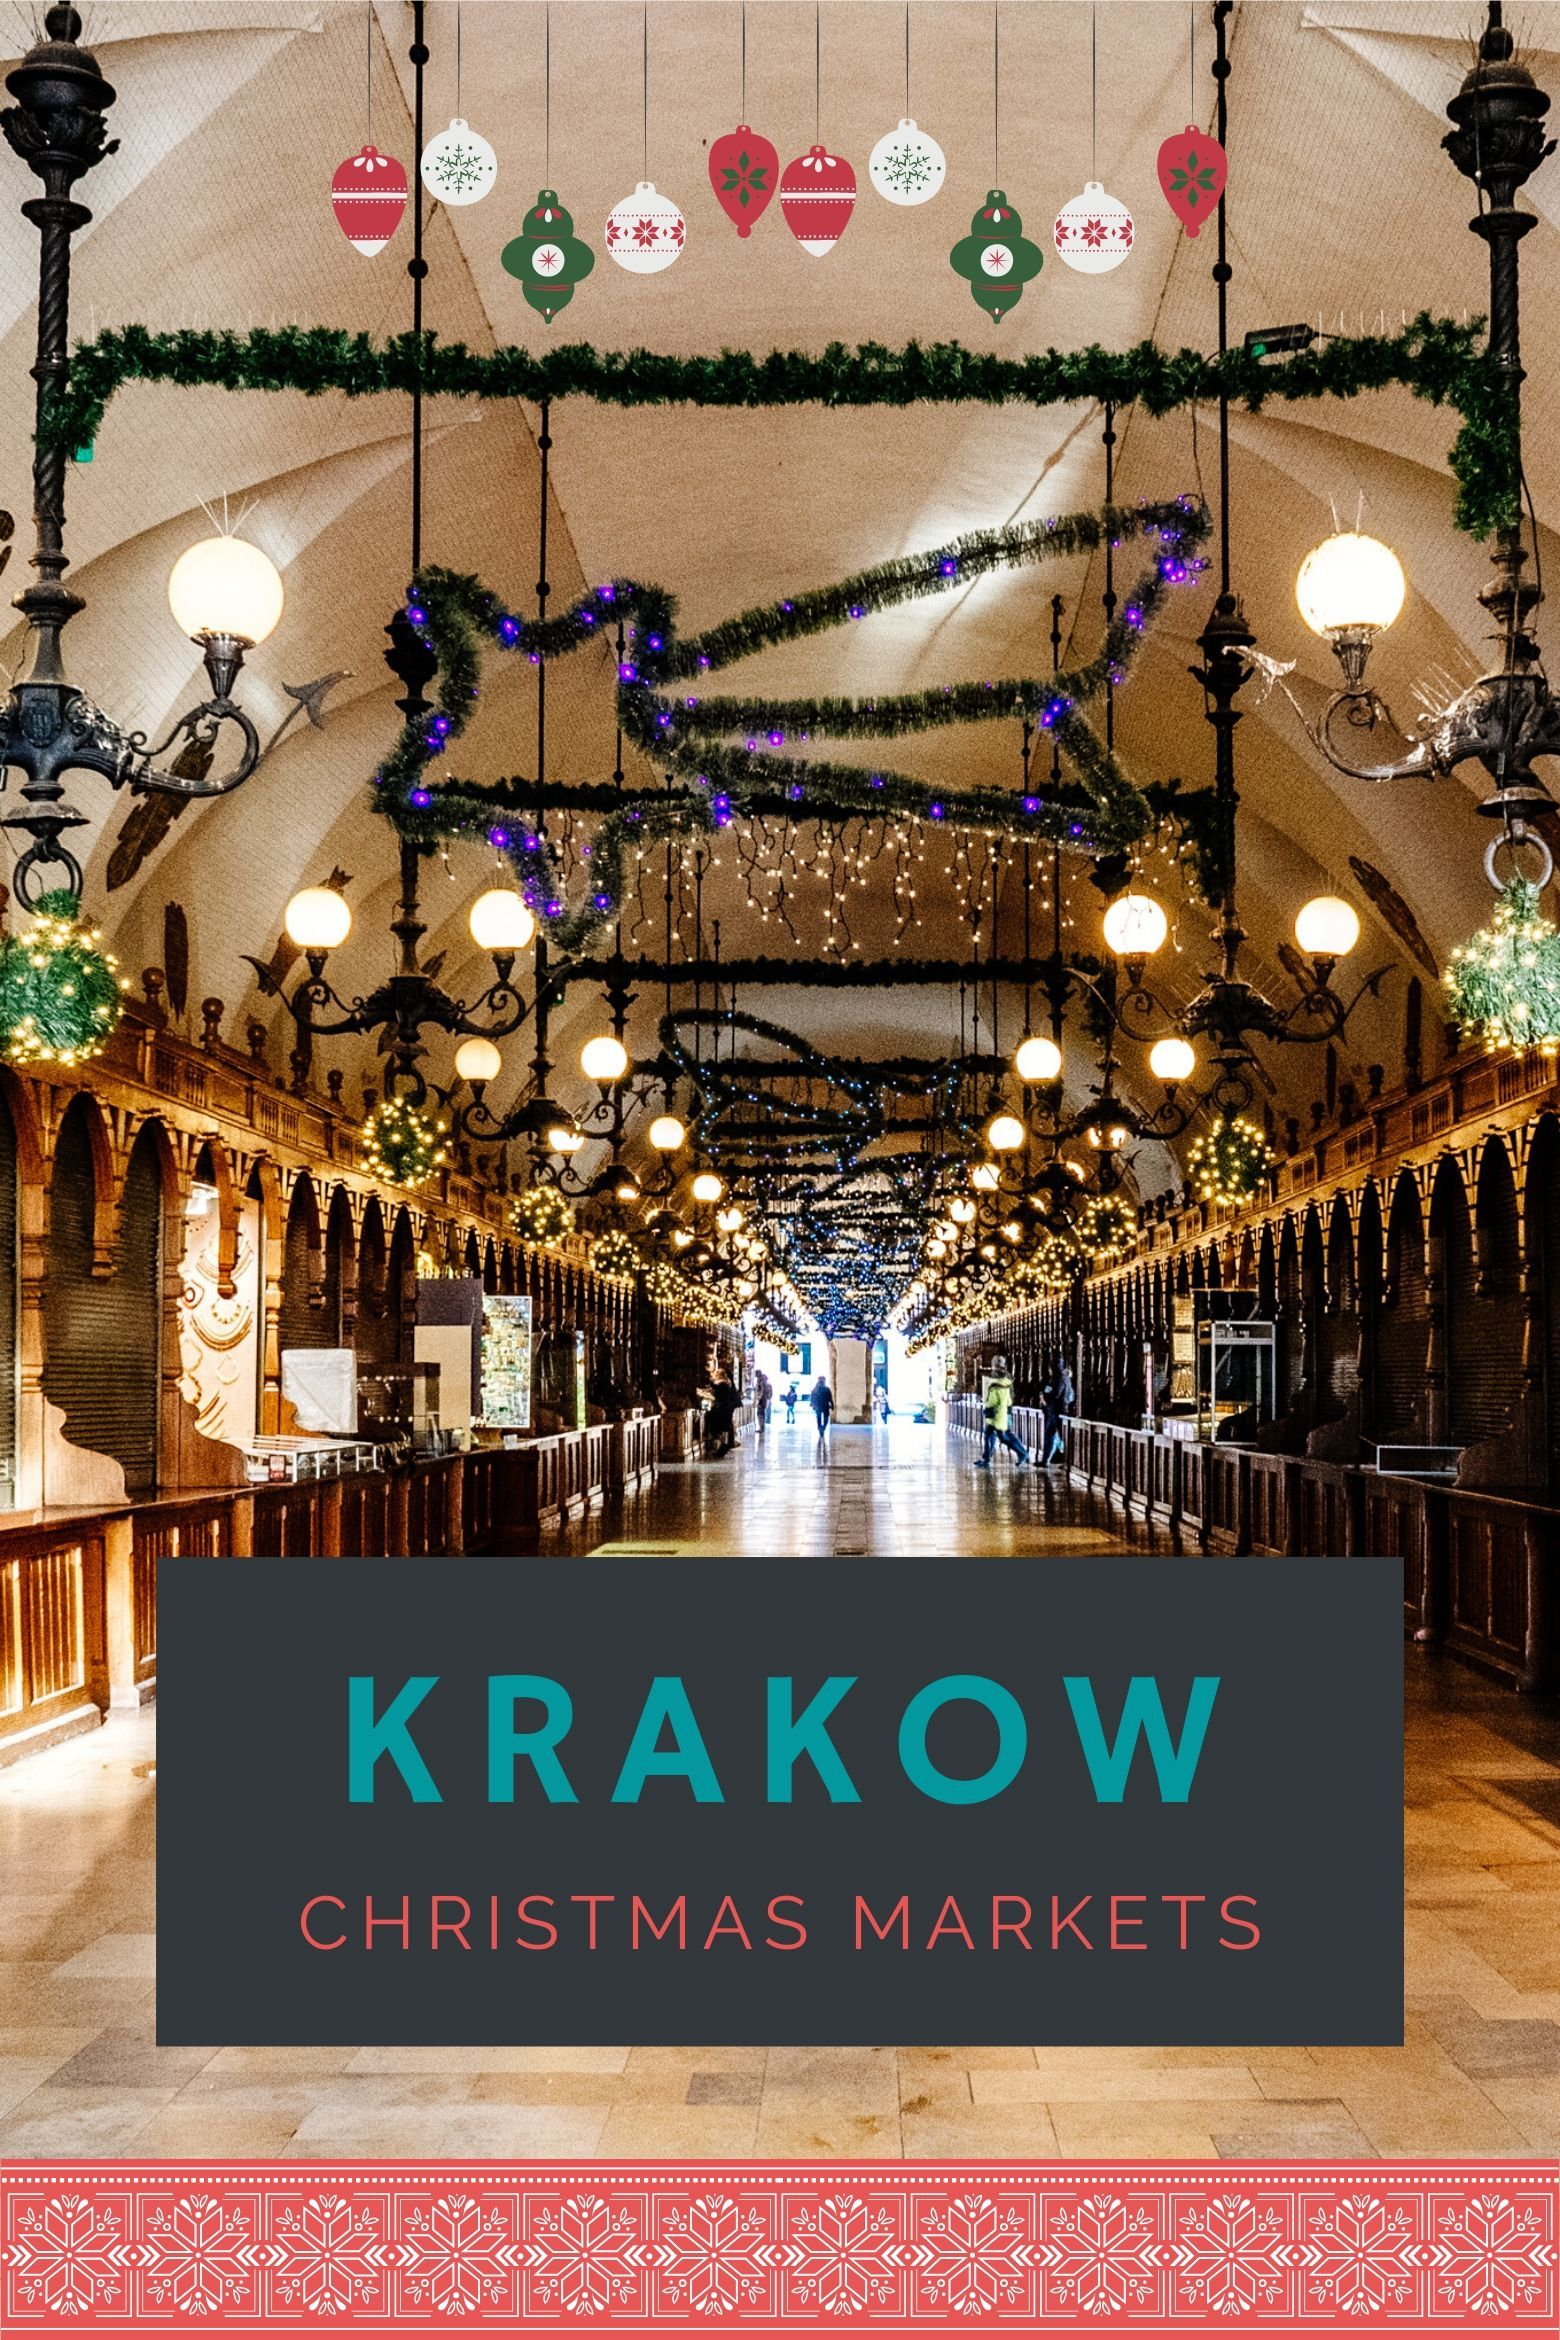 Visit the Krakow Christmas Market, Polands best winter market. Krakow is streets ahead of the rest of Poland when it comes to celebrating Christmas and the New Year. The markets are pretty and lively, the food is affordable and delicious and the people in Krakow and lovely. I recommend visiting this year in November or December when you can get the most out the market in the old square and the historic Jewish Quarter.